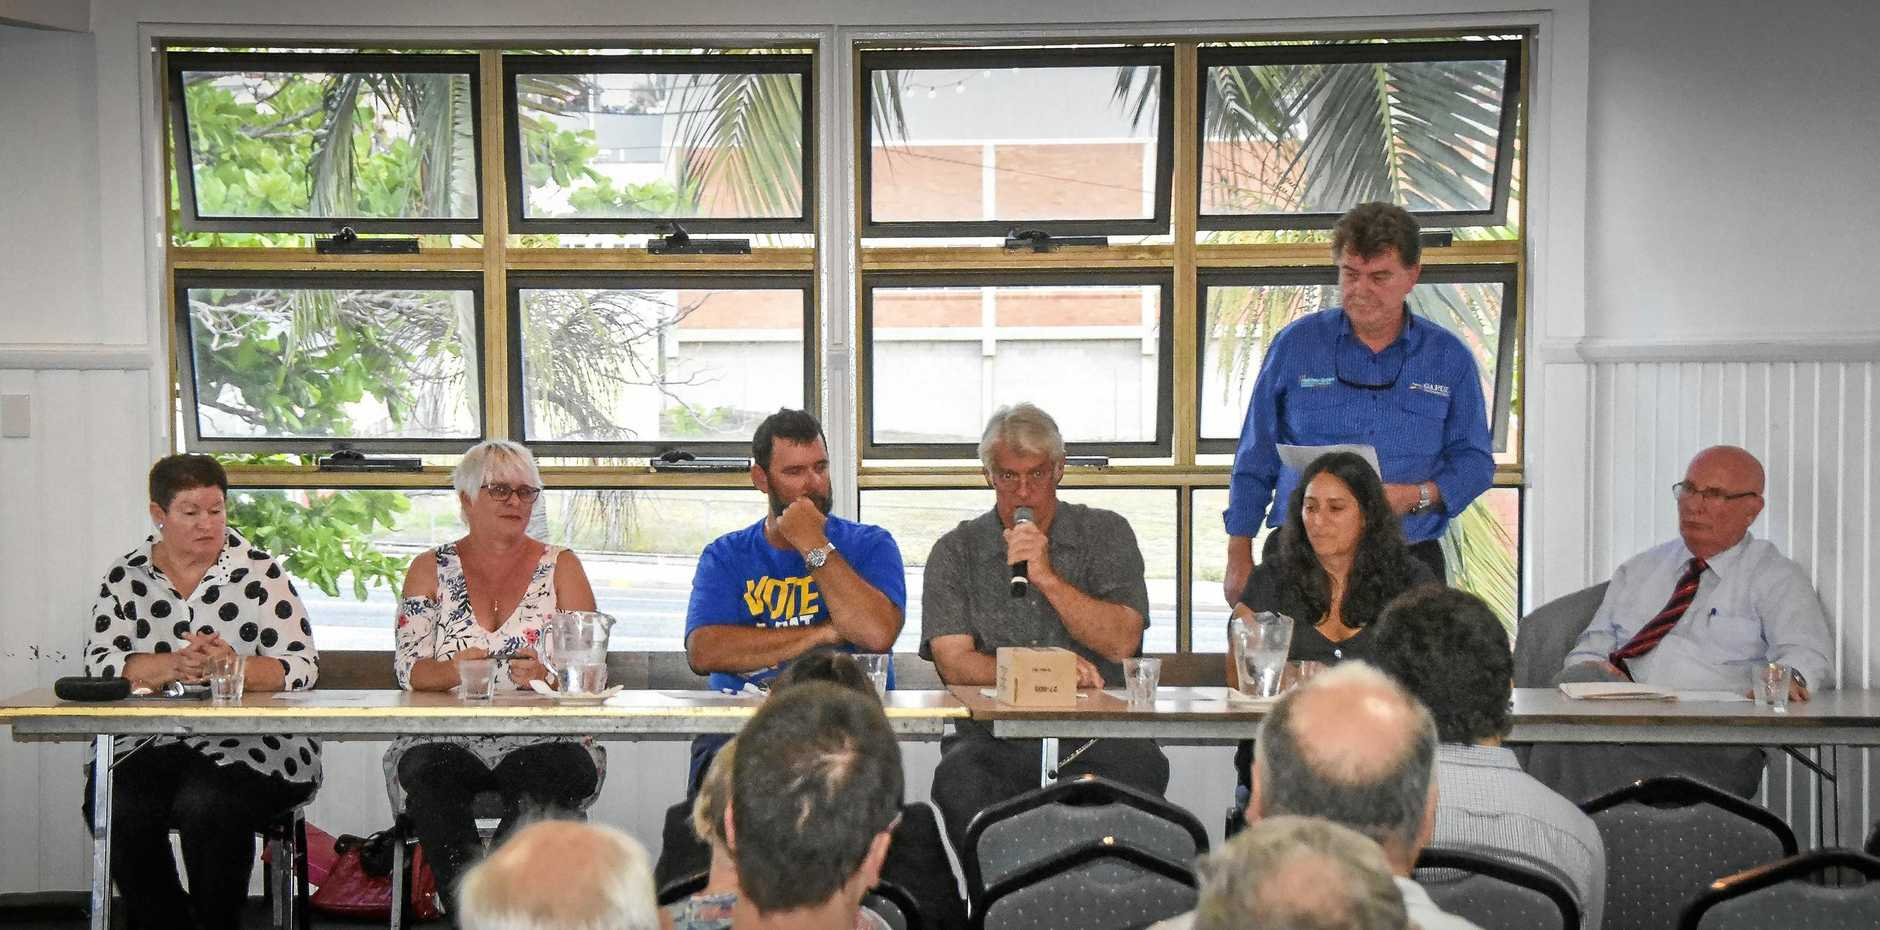 SPOTLIGHT: GAPDL held a meet-the-candidates event on Wednesday afternoon ahead of Saturday's Gladstone Regional Council by-election.